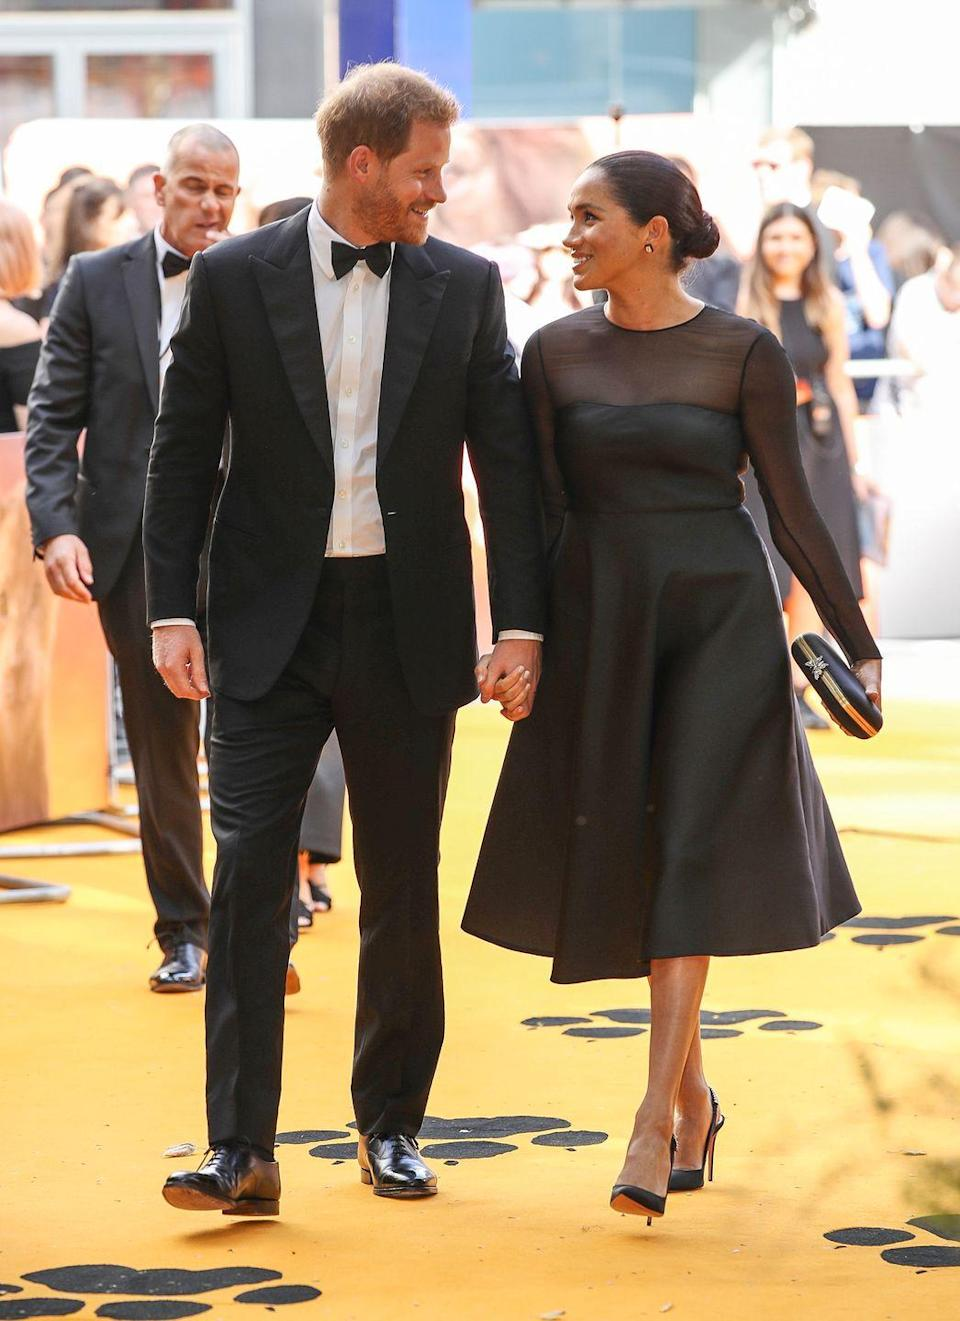 <p>Wearing matching black tie attire for the 'The Lion King' European premiere in London on 14 July, the Duke and Duchess of Sussex looked smitten as they walked the yellow-coloured carpet before meeting Beyoncé and Jay-Z. </p>